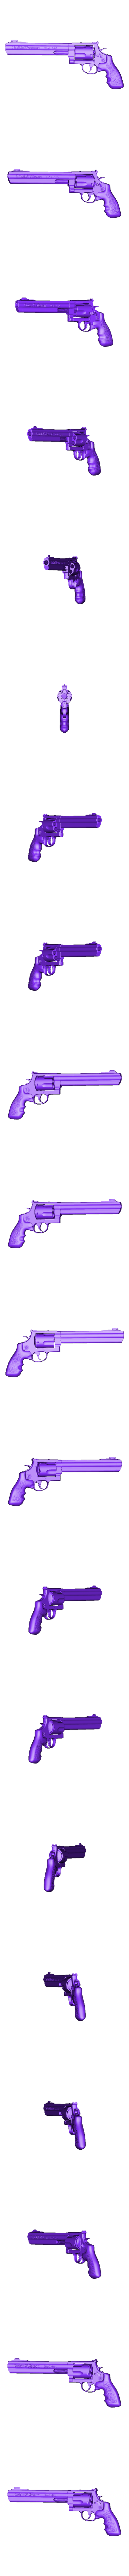 Smith and Wesson.OBJ Download OBJ file Smith & Wesson • 3D printable object, tex123